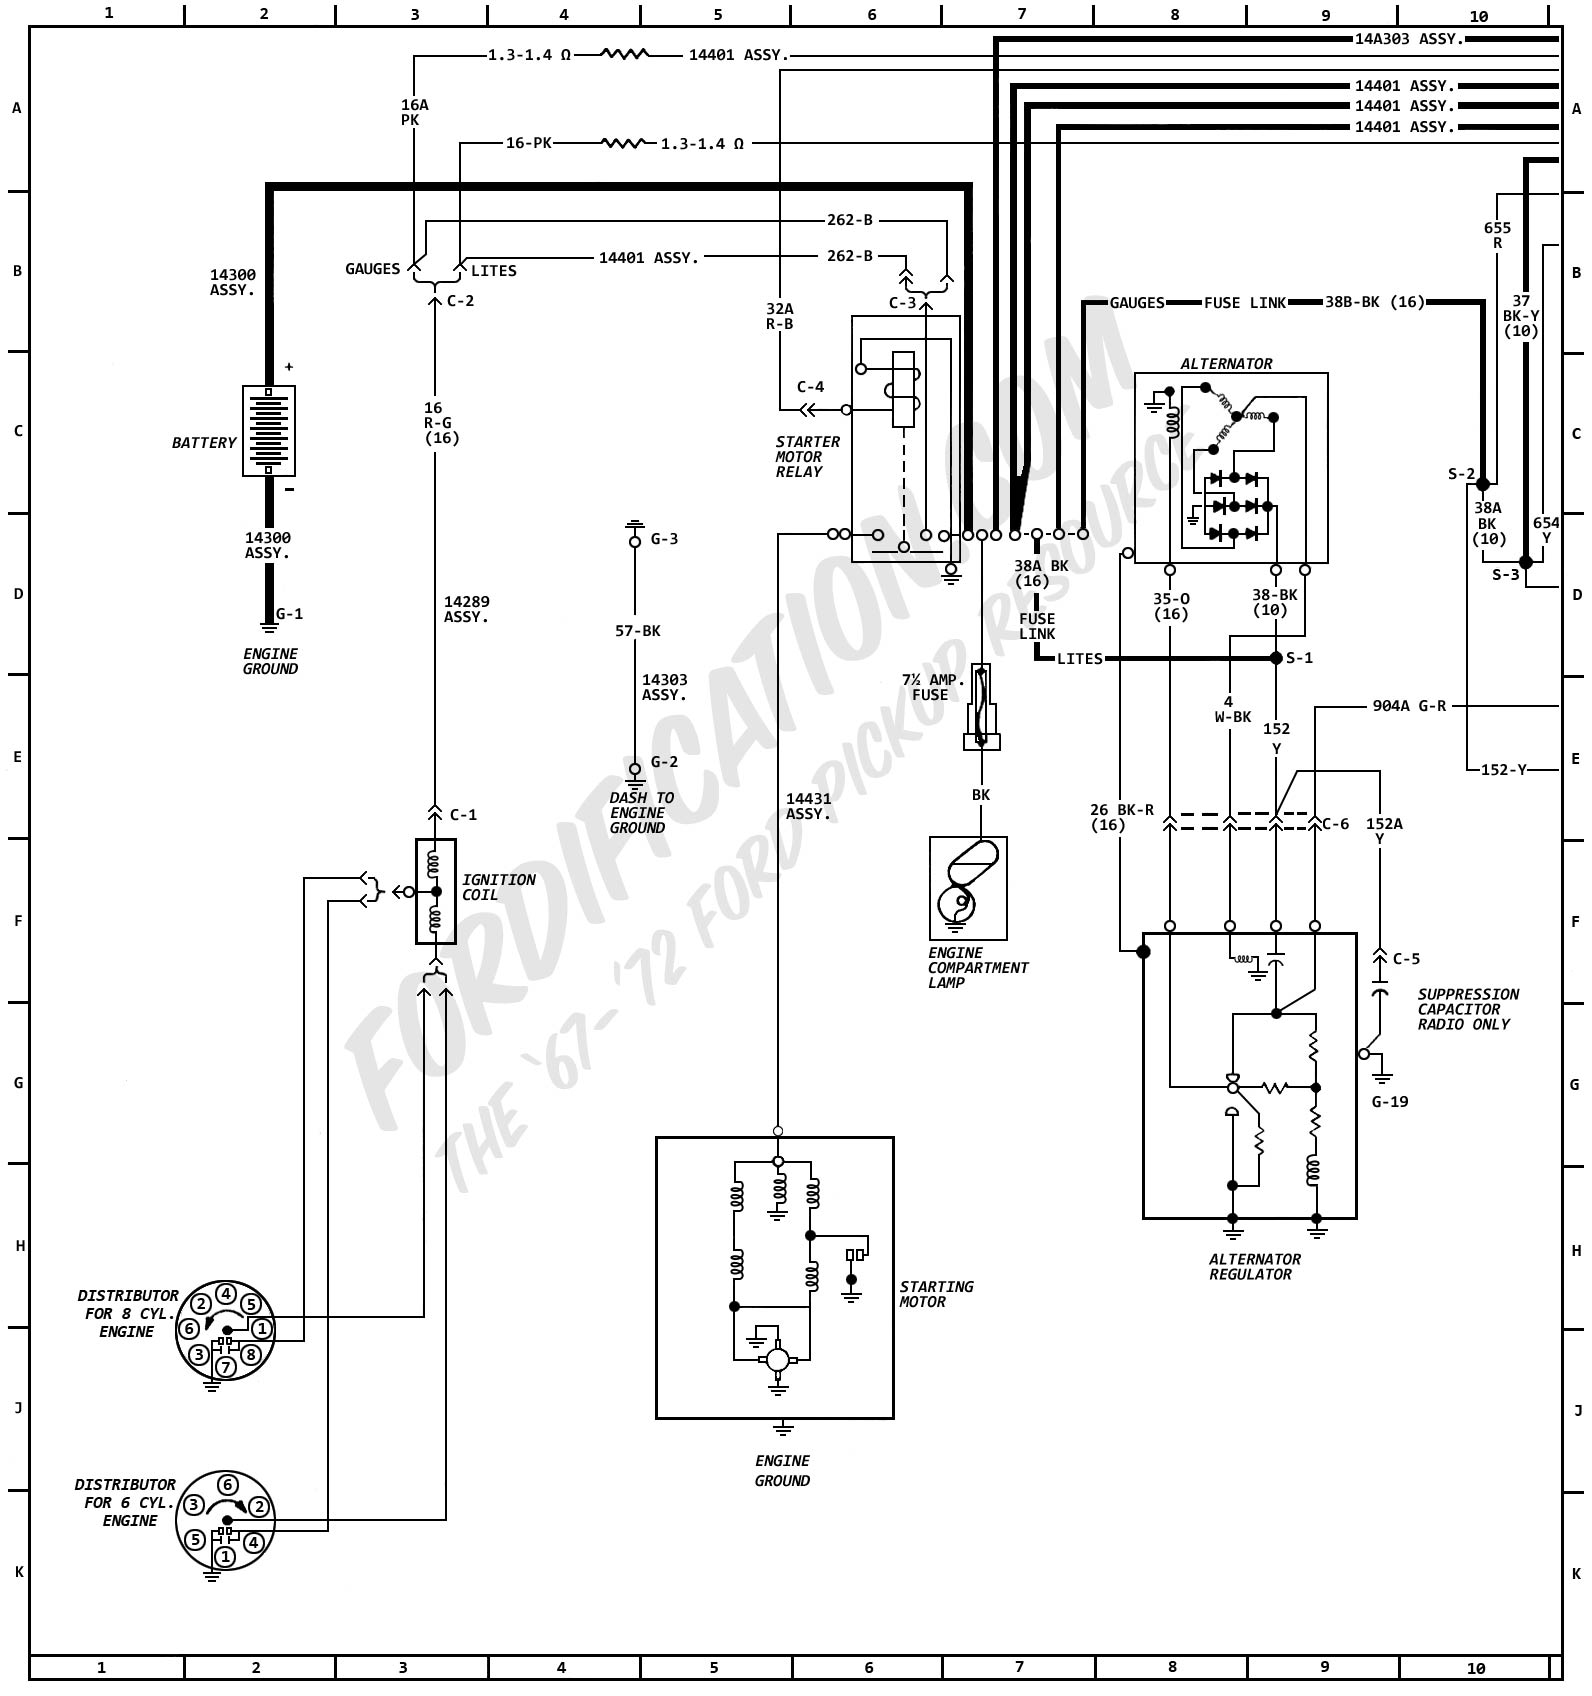 1972MasterWiring_01 1972 ford truck wiring diagrams fordification com 1971 ford f250 wiring diagram at bakdesigns.co